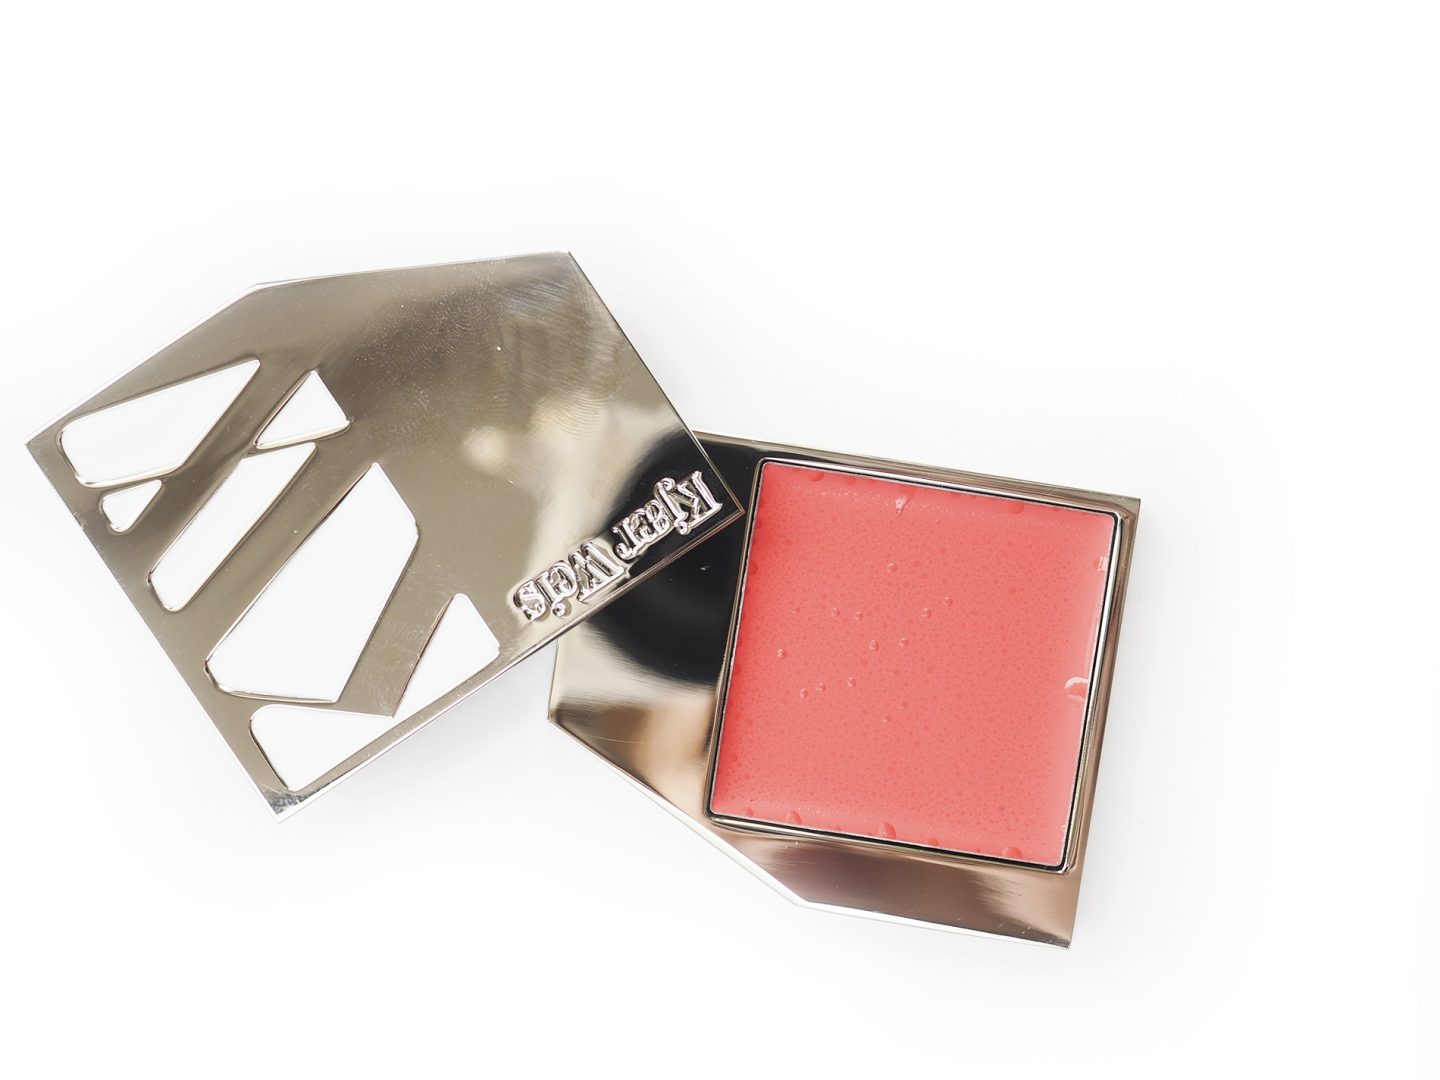 Swatch Kjaer Weis Cream Blush Above And Beyond